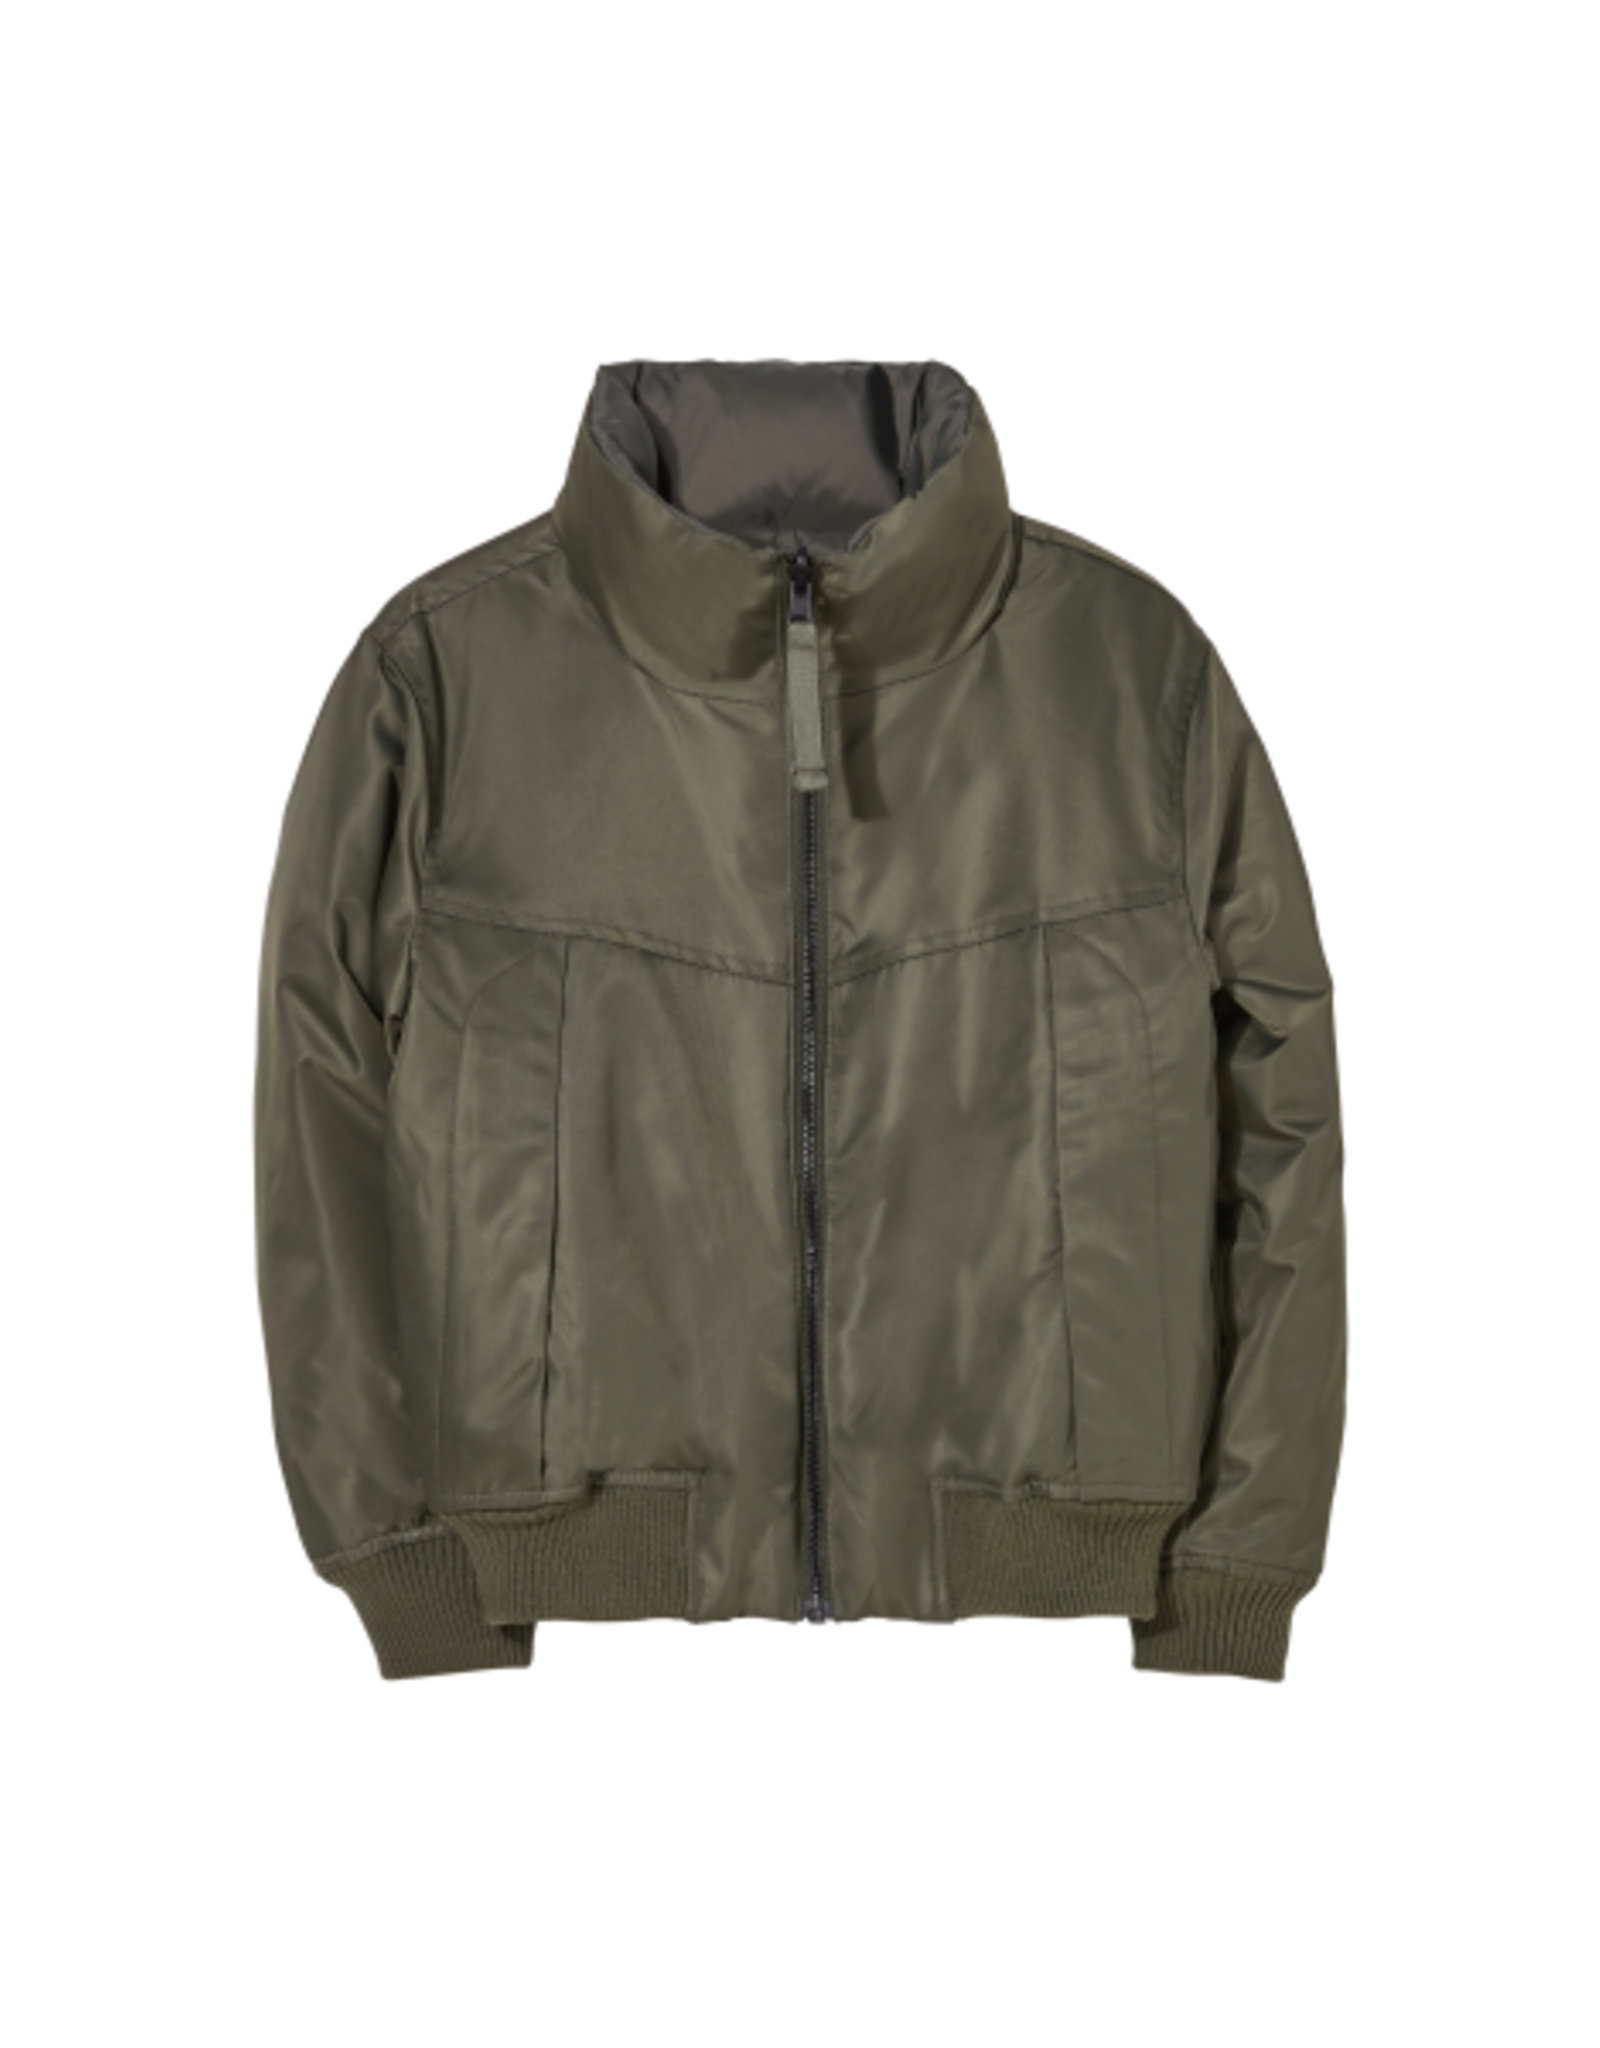 Finger in the Nose Finger in the Nose FW21 Snowflight khaki jacket